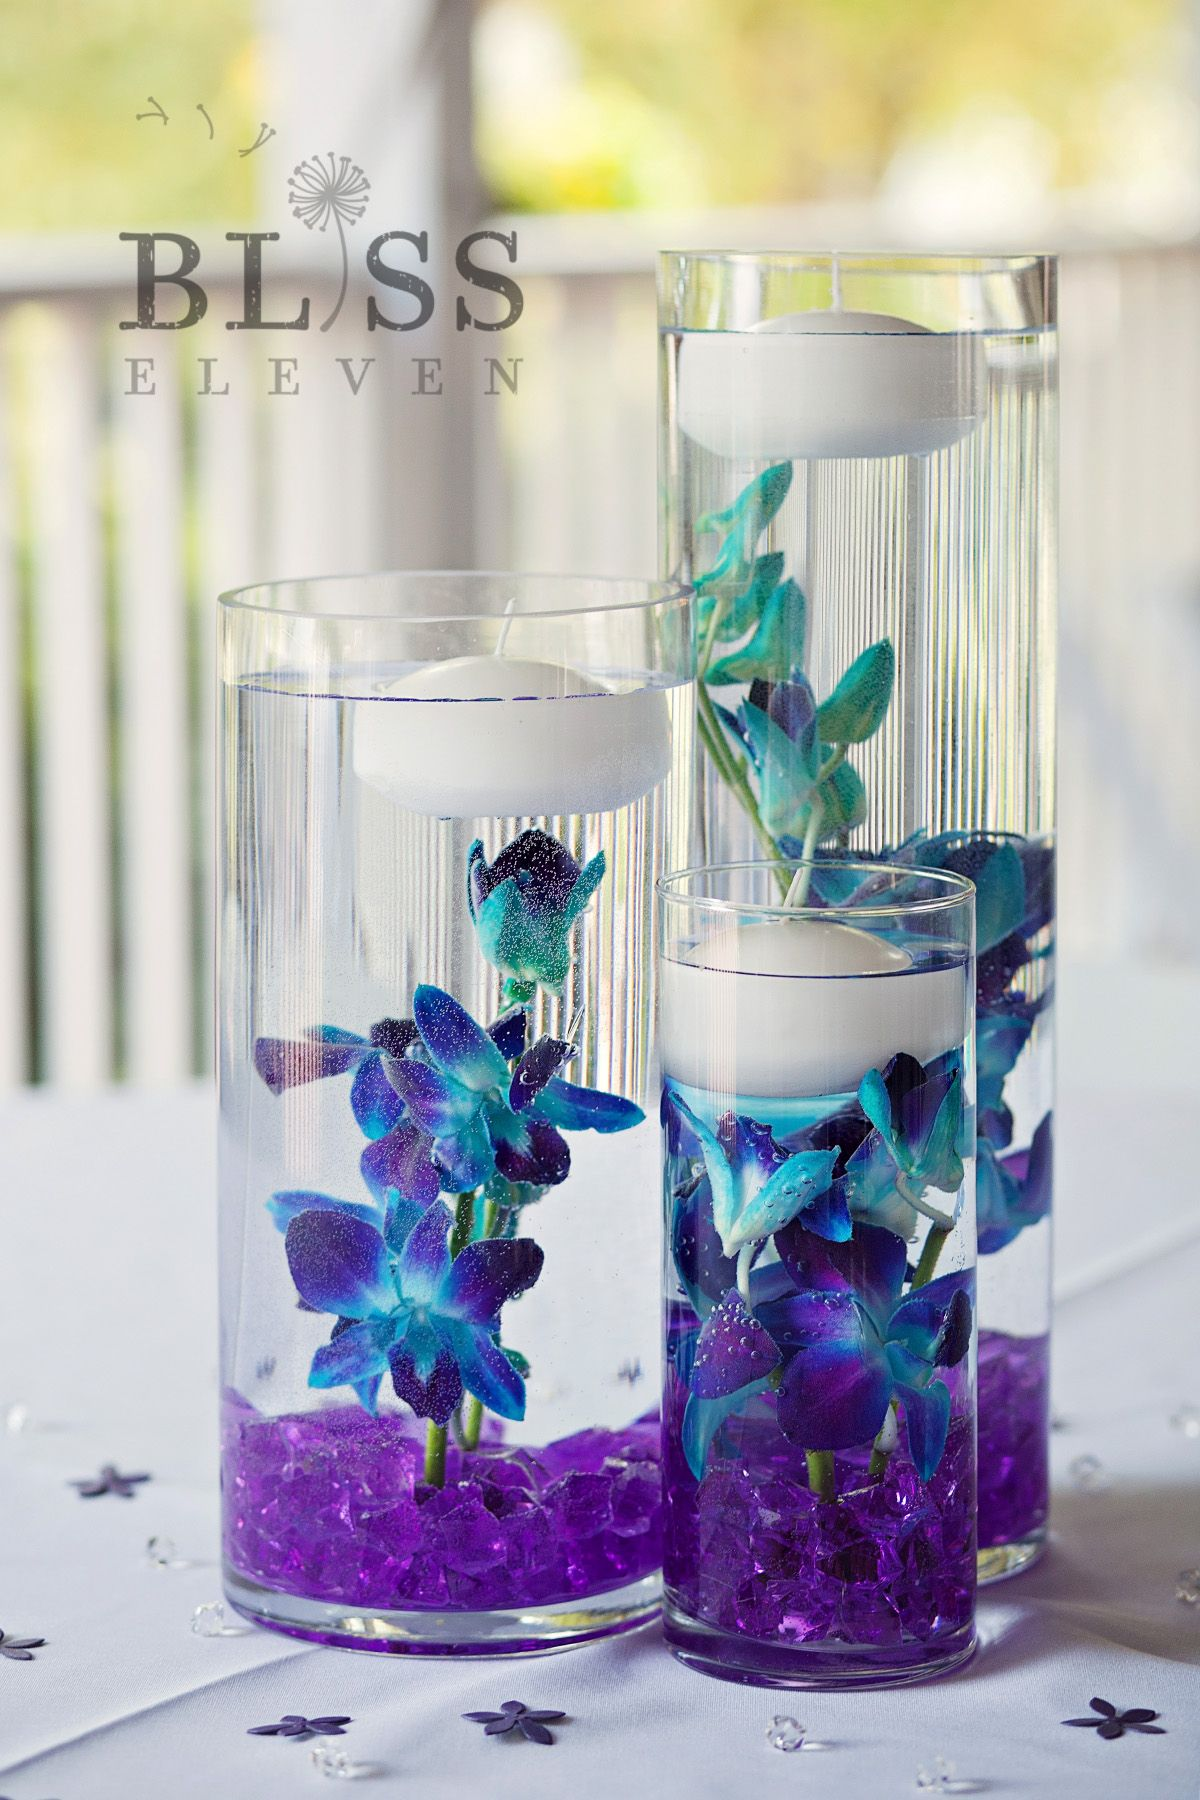 A centerpiece collection of amazing underwater blue bomb